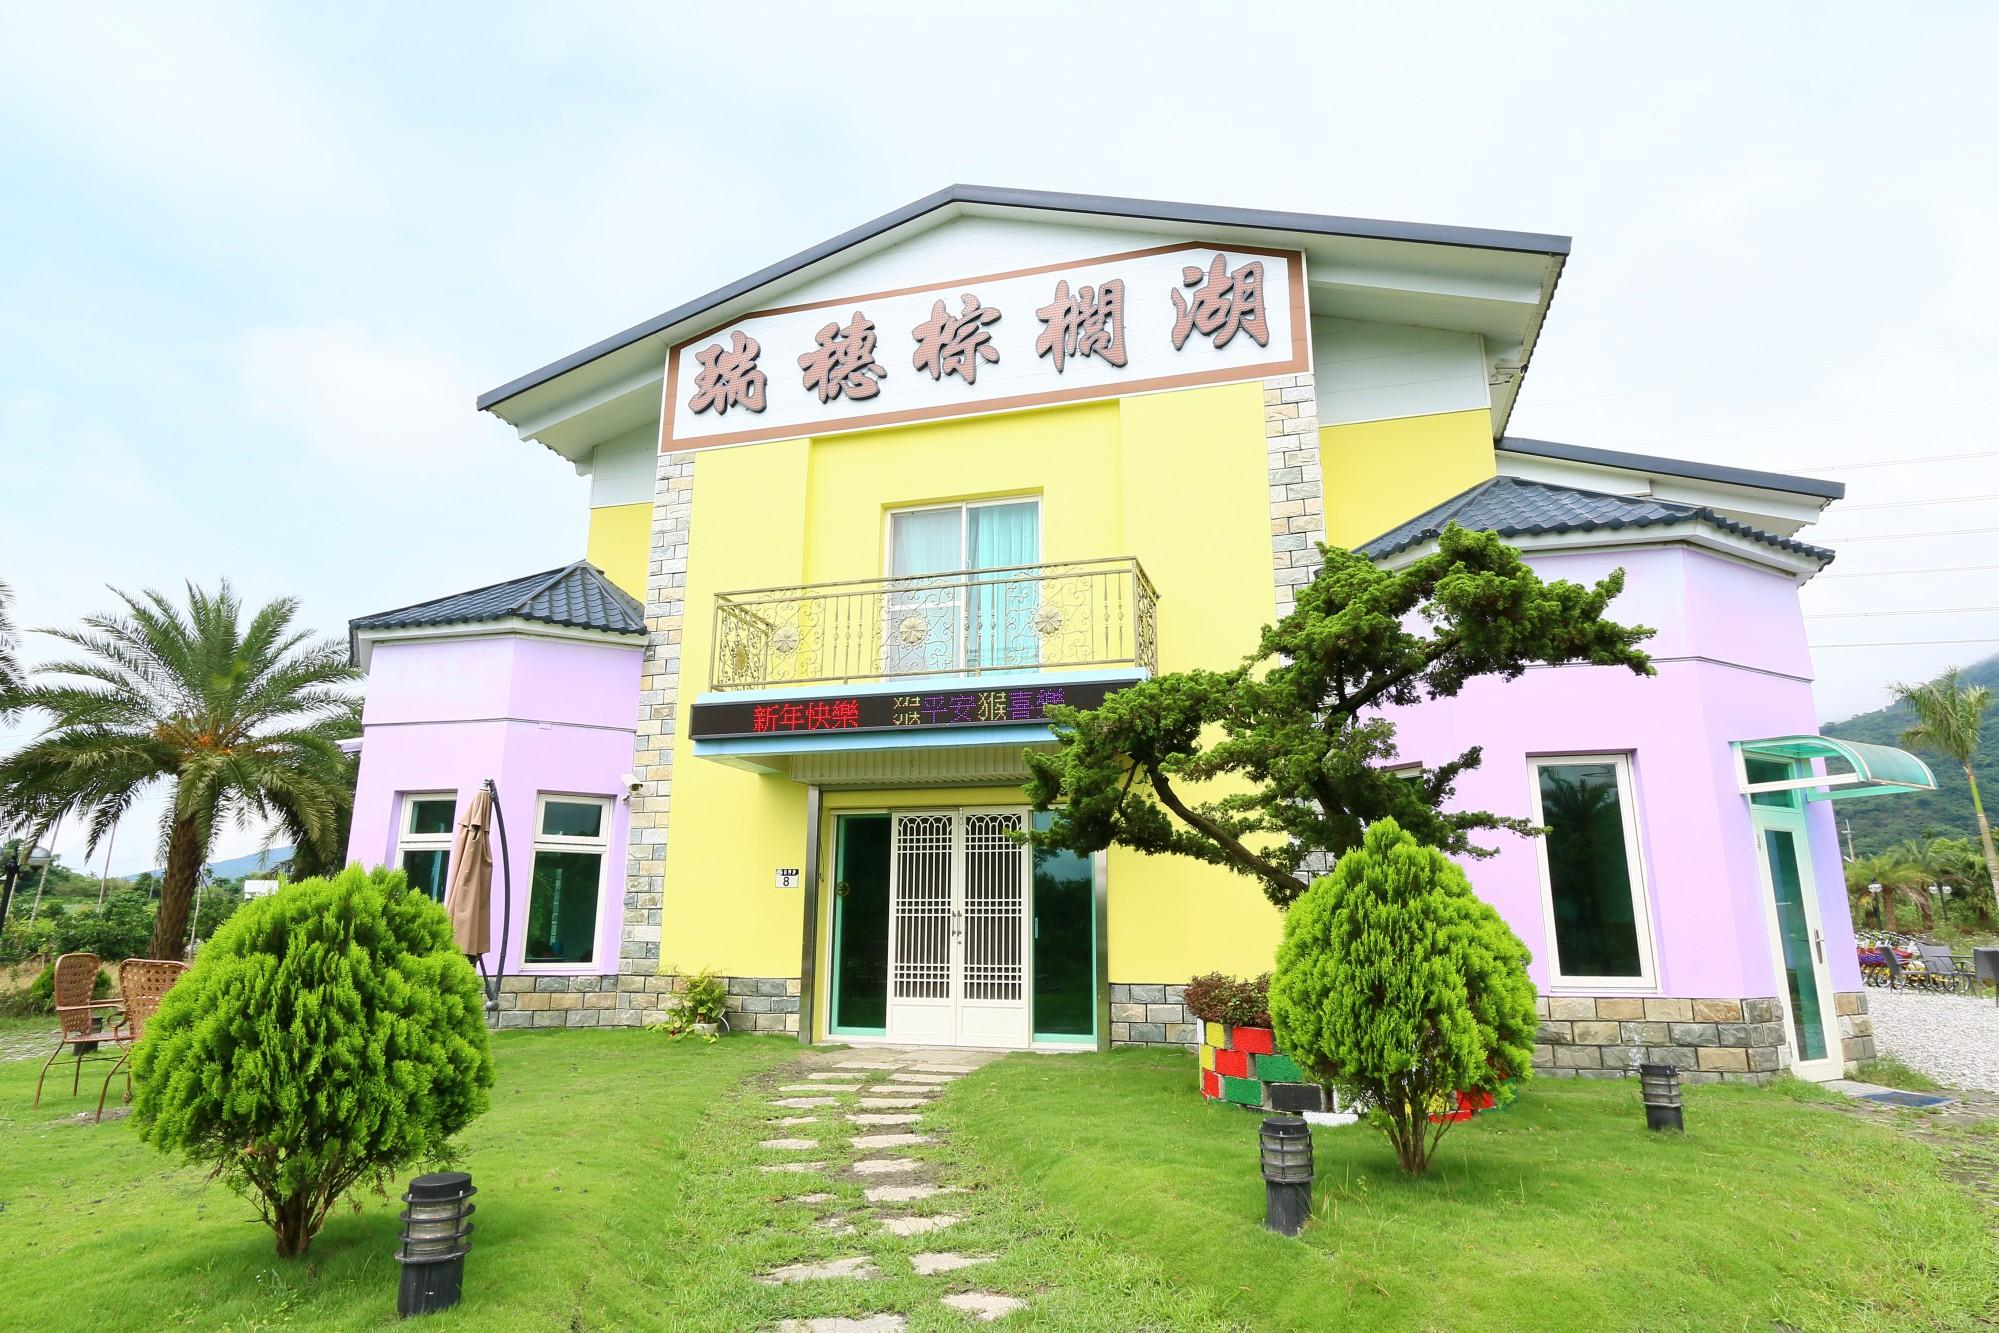 RUISUI PALM LAKES BED AND BREAKFAST